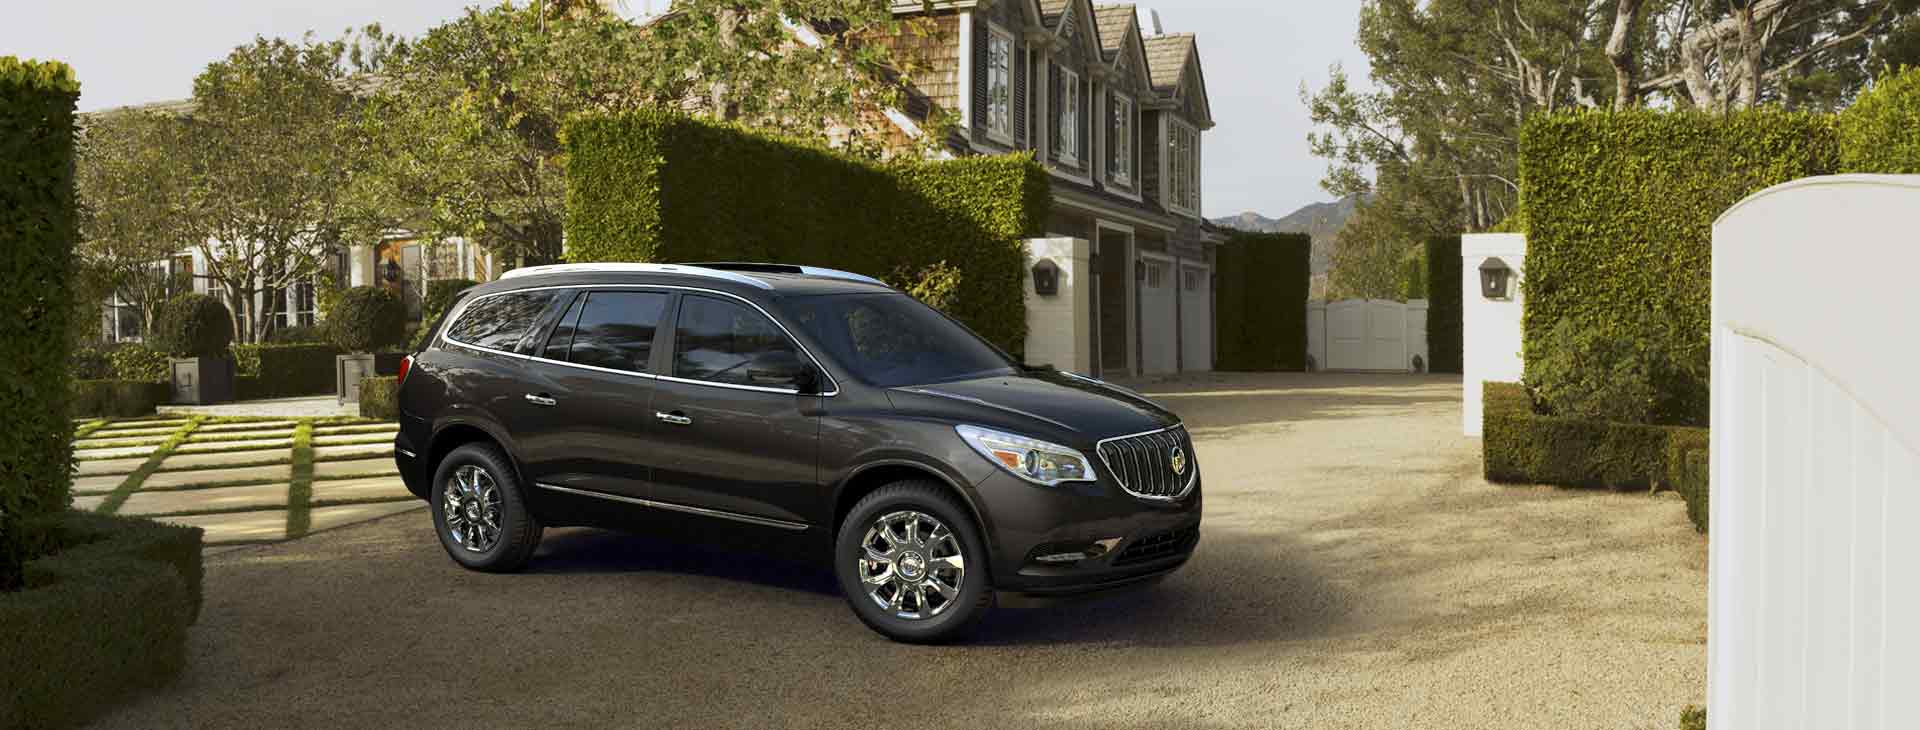 haven for all buick vehicles in enclave sale lock vehicle photo pa vehiclesearchresults